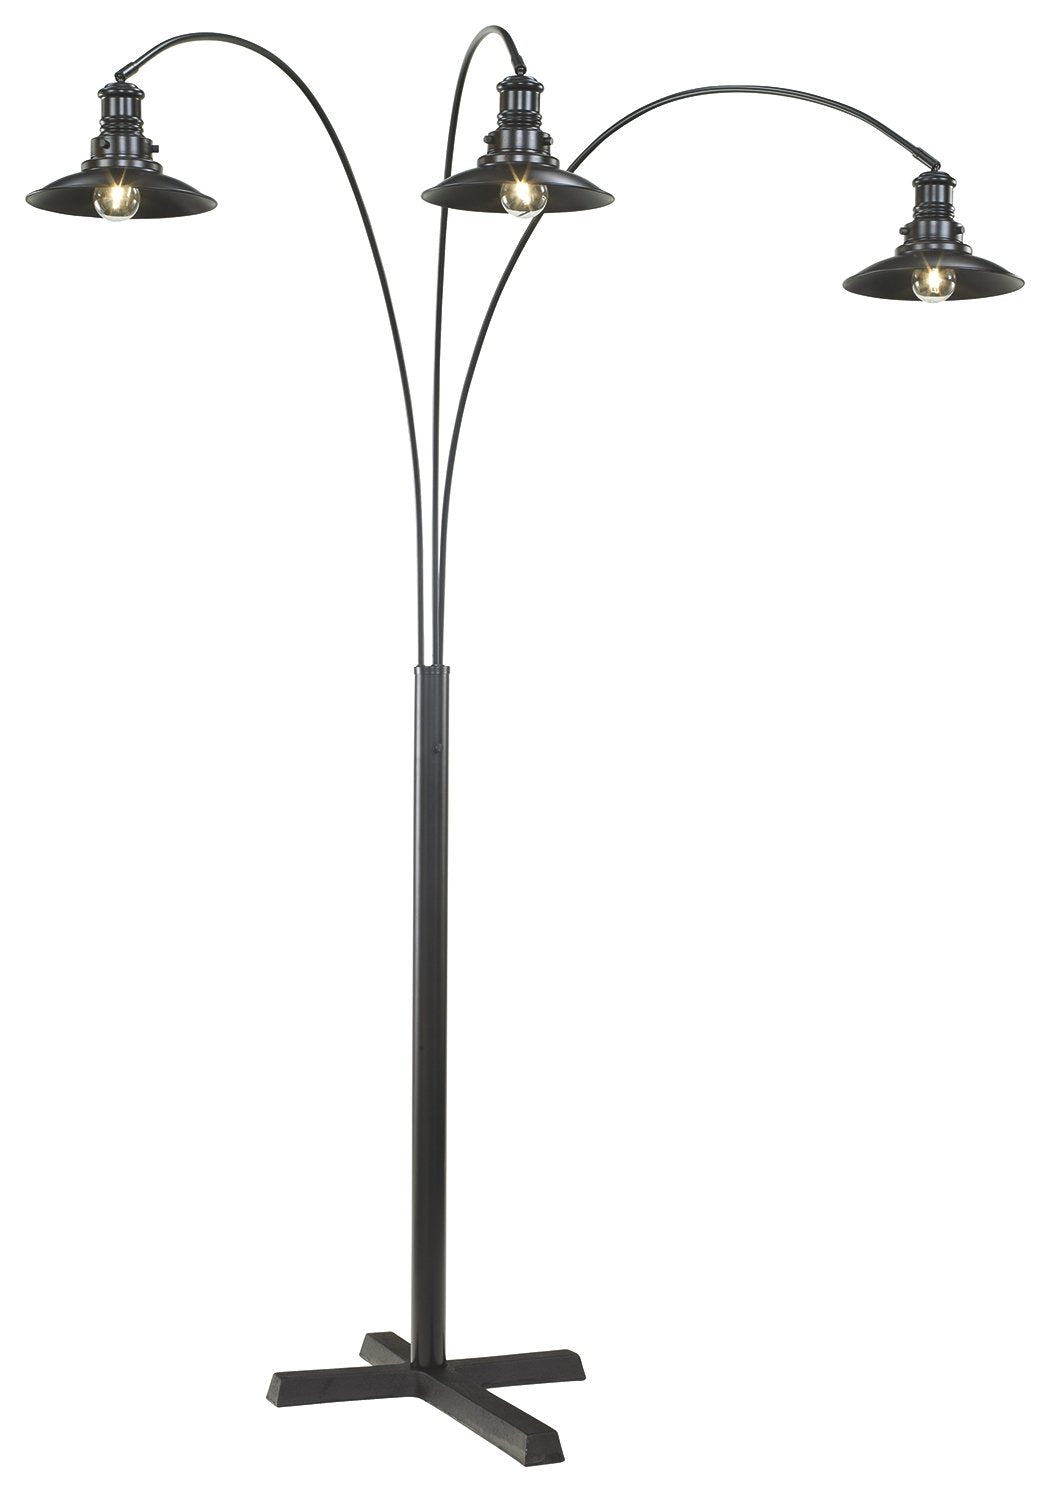 Sheriel Signature Design by Ashley Floor Lamp